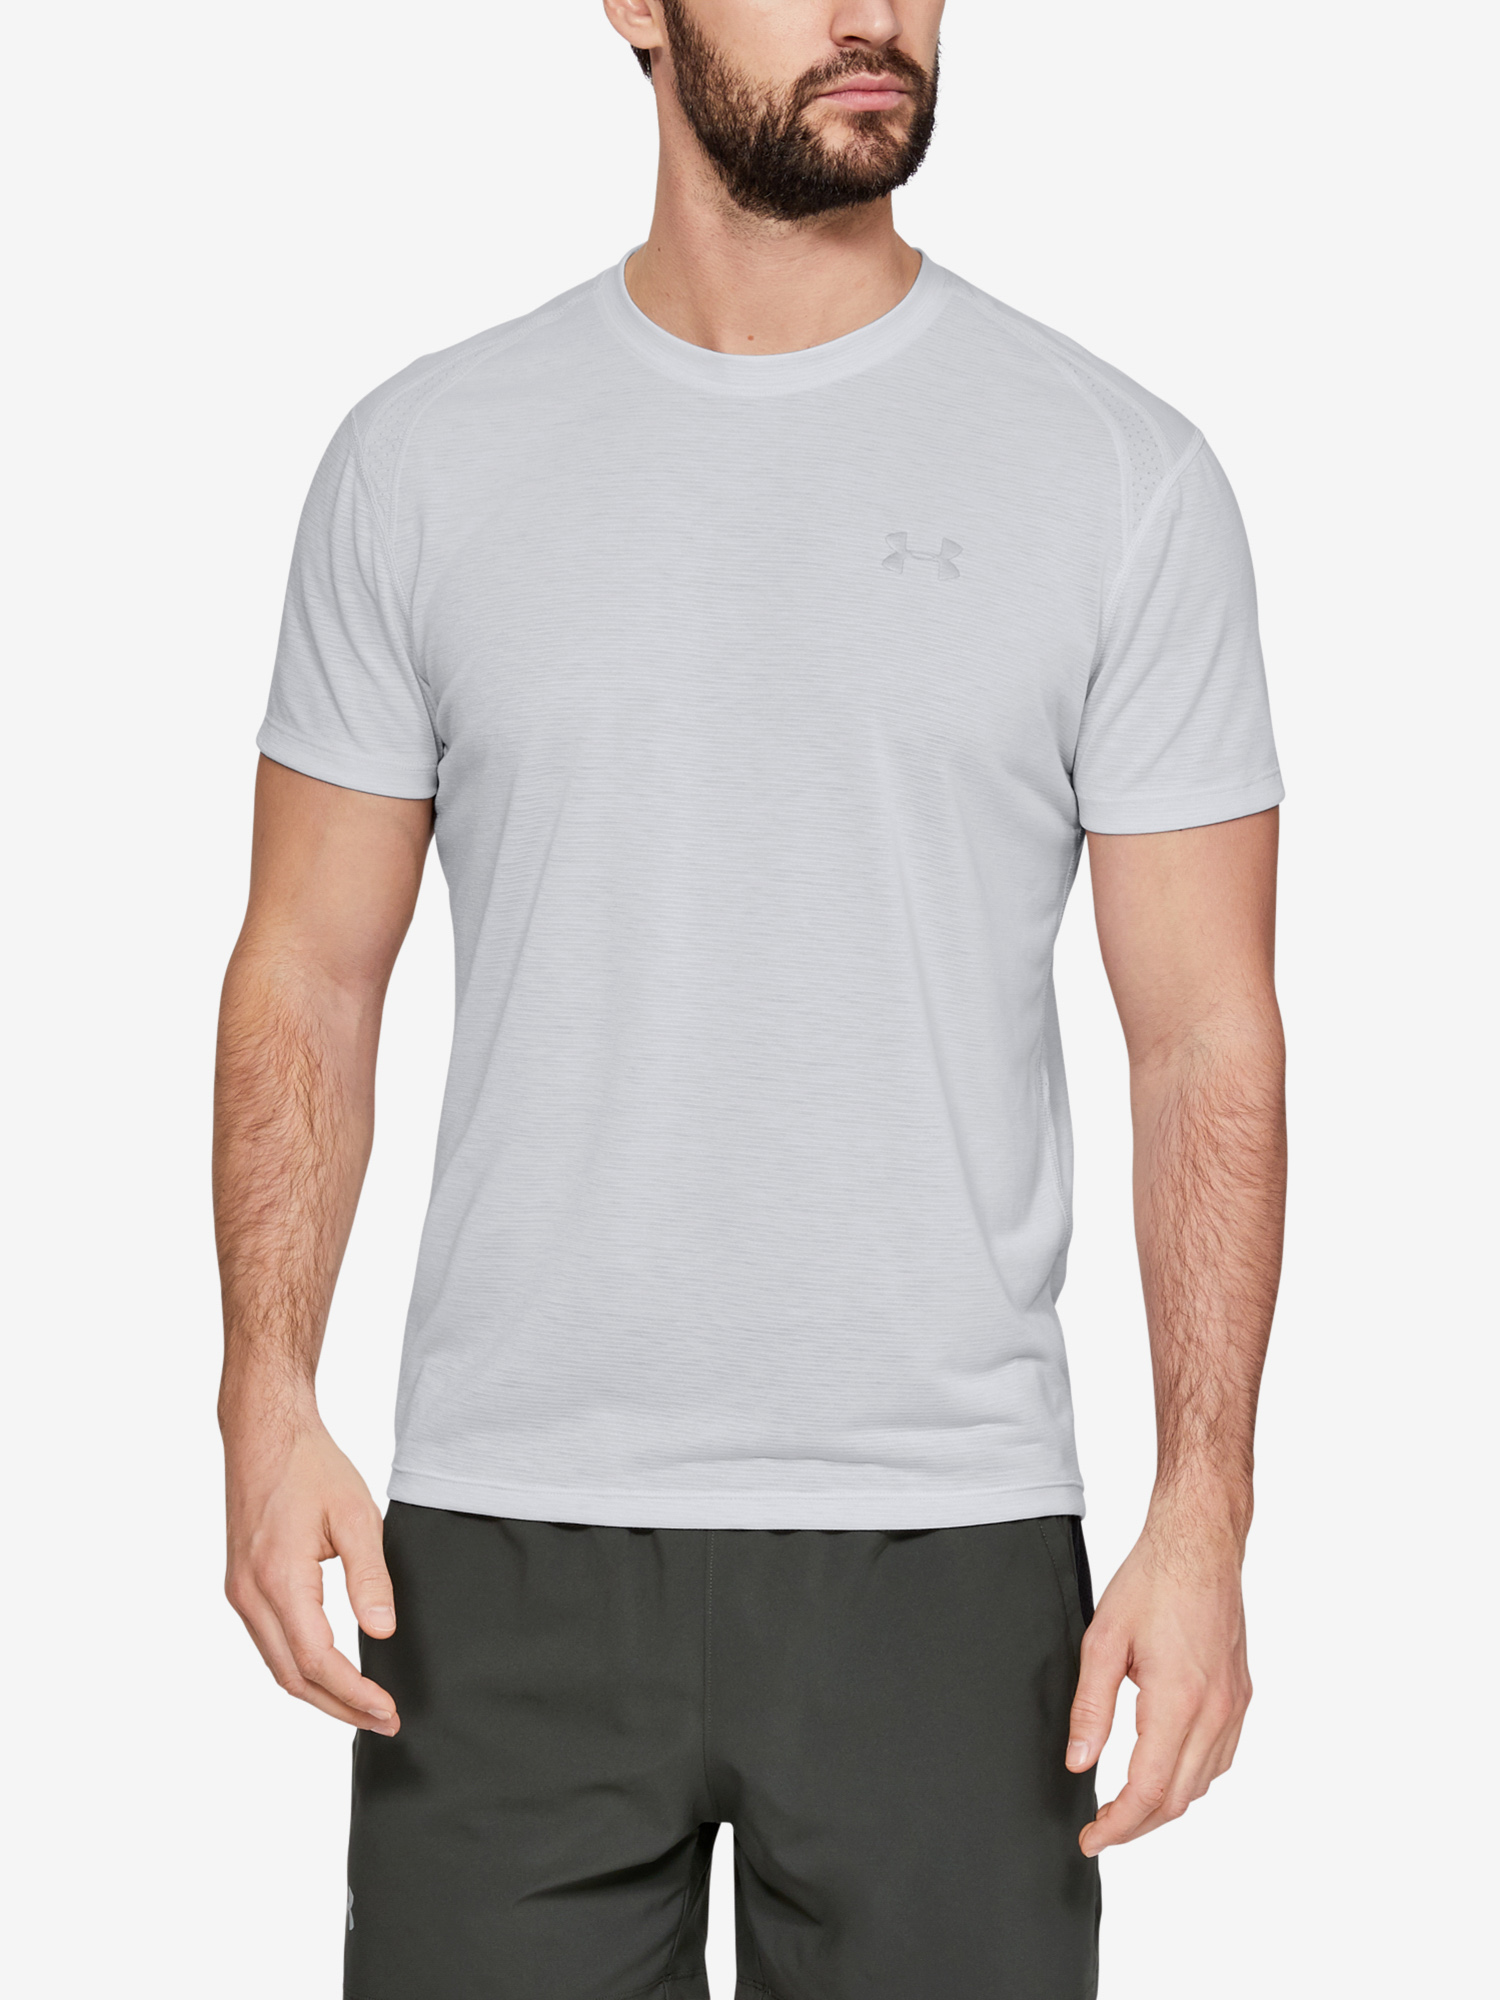 Tričko Under Armour Streaker 2.0 Shortsleeve-Gry (1)